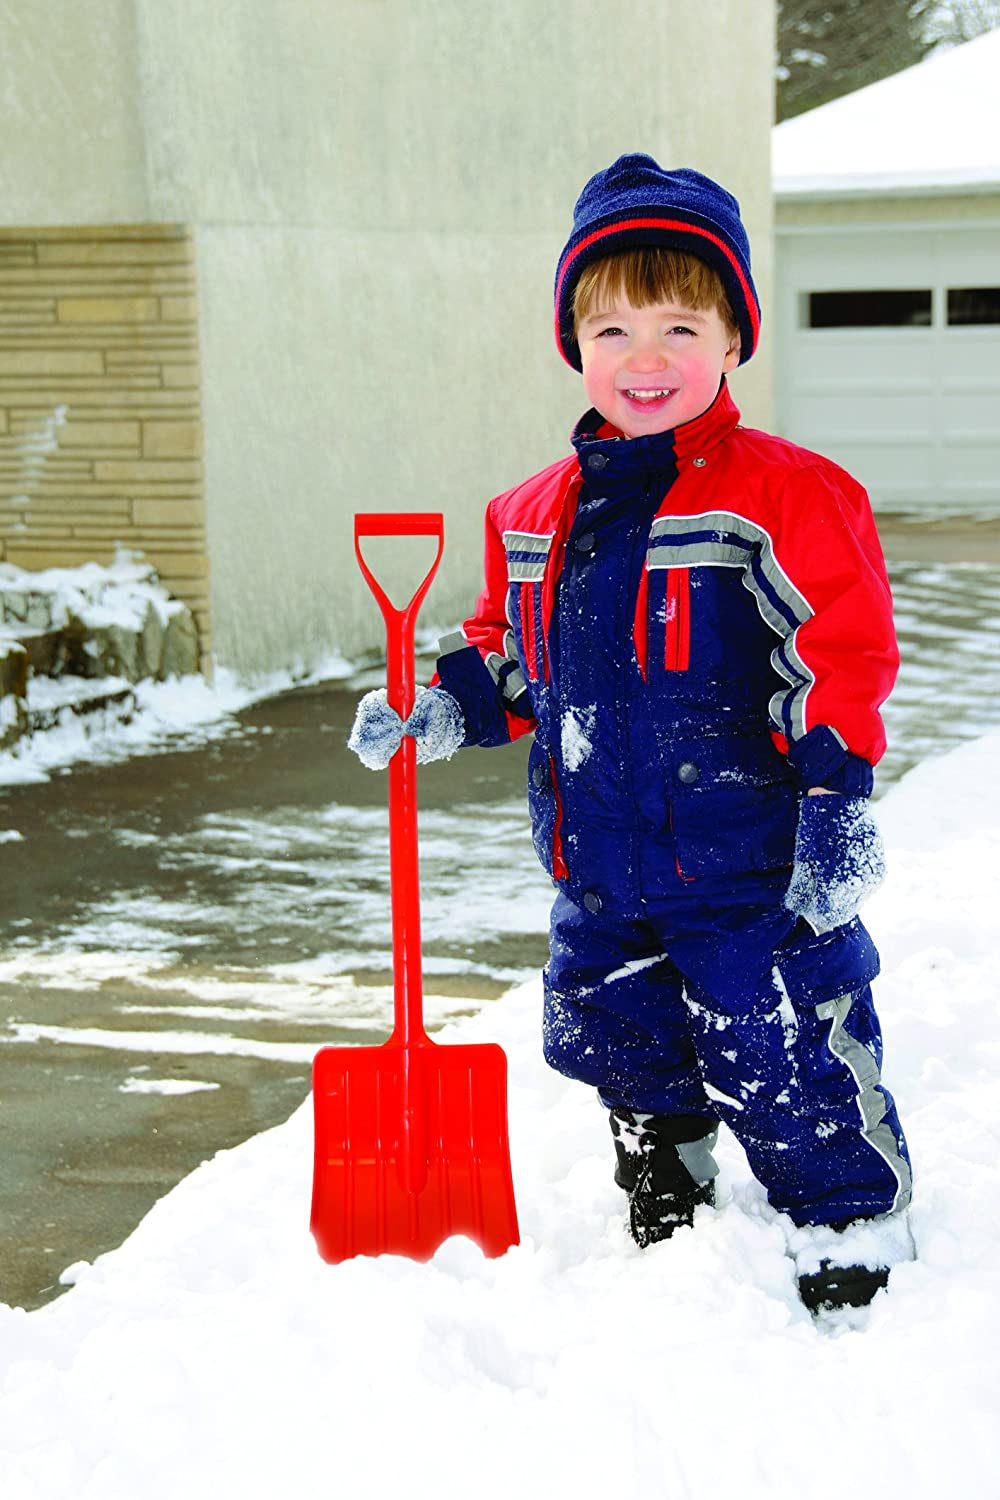 Best Snow Shovel Reviews and Buying Guide 7